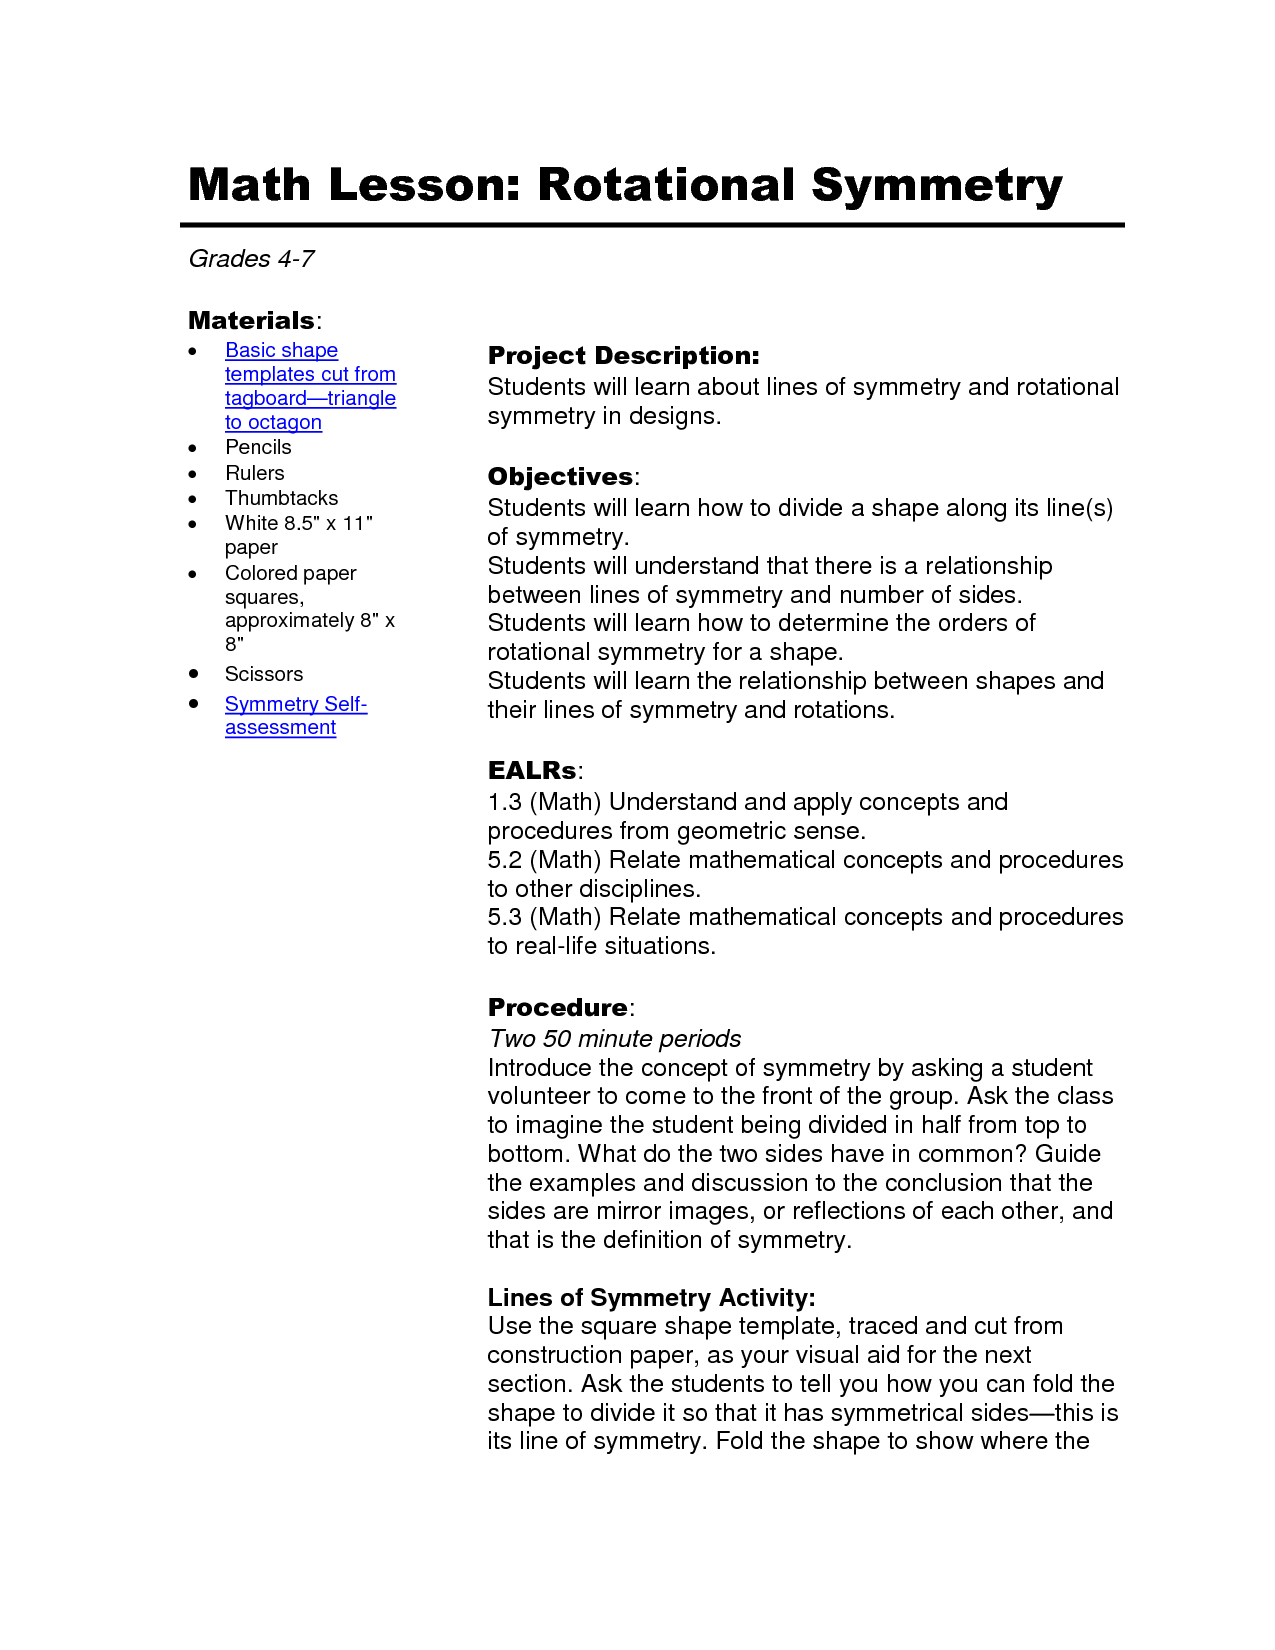 worksheet Polygons Worksheet area of polygons worksheets free mathsrotationalsymmetry mathsrotationalsymmetryworksheets